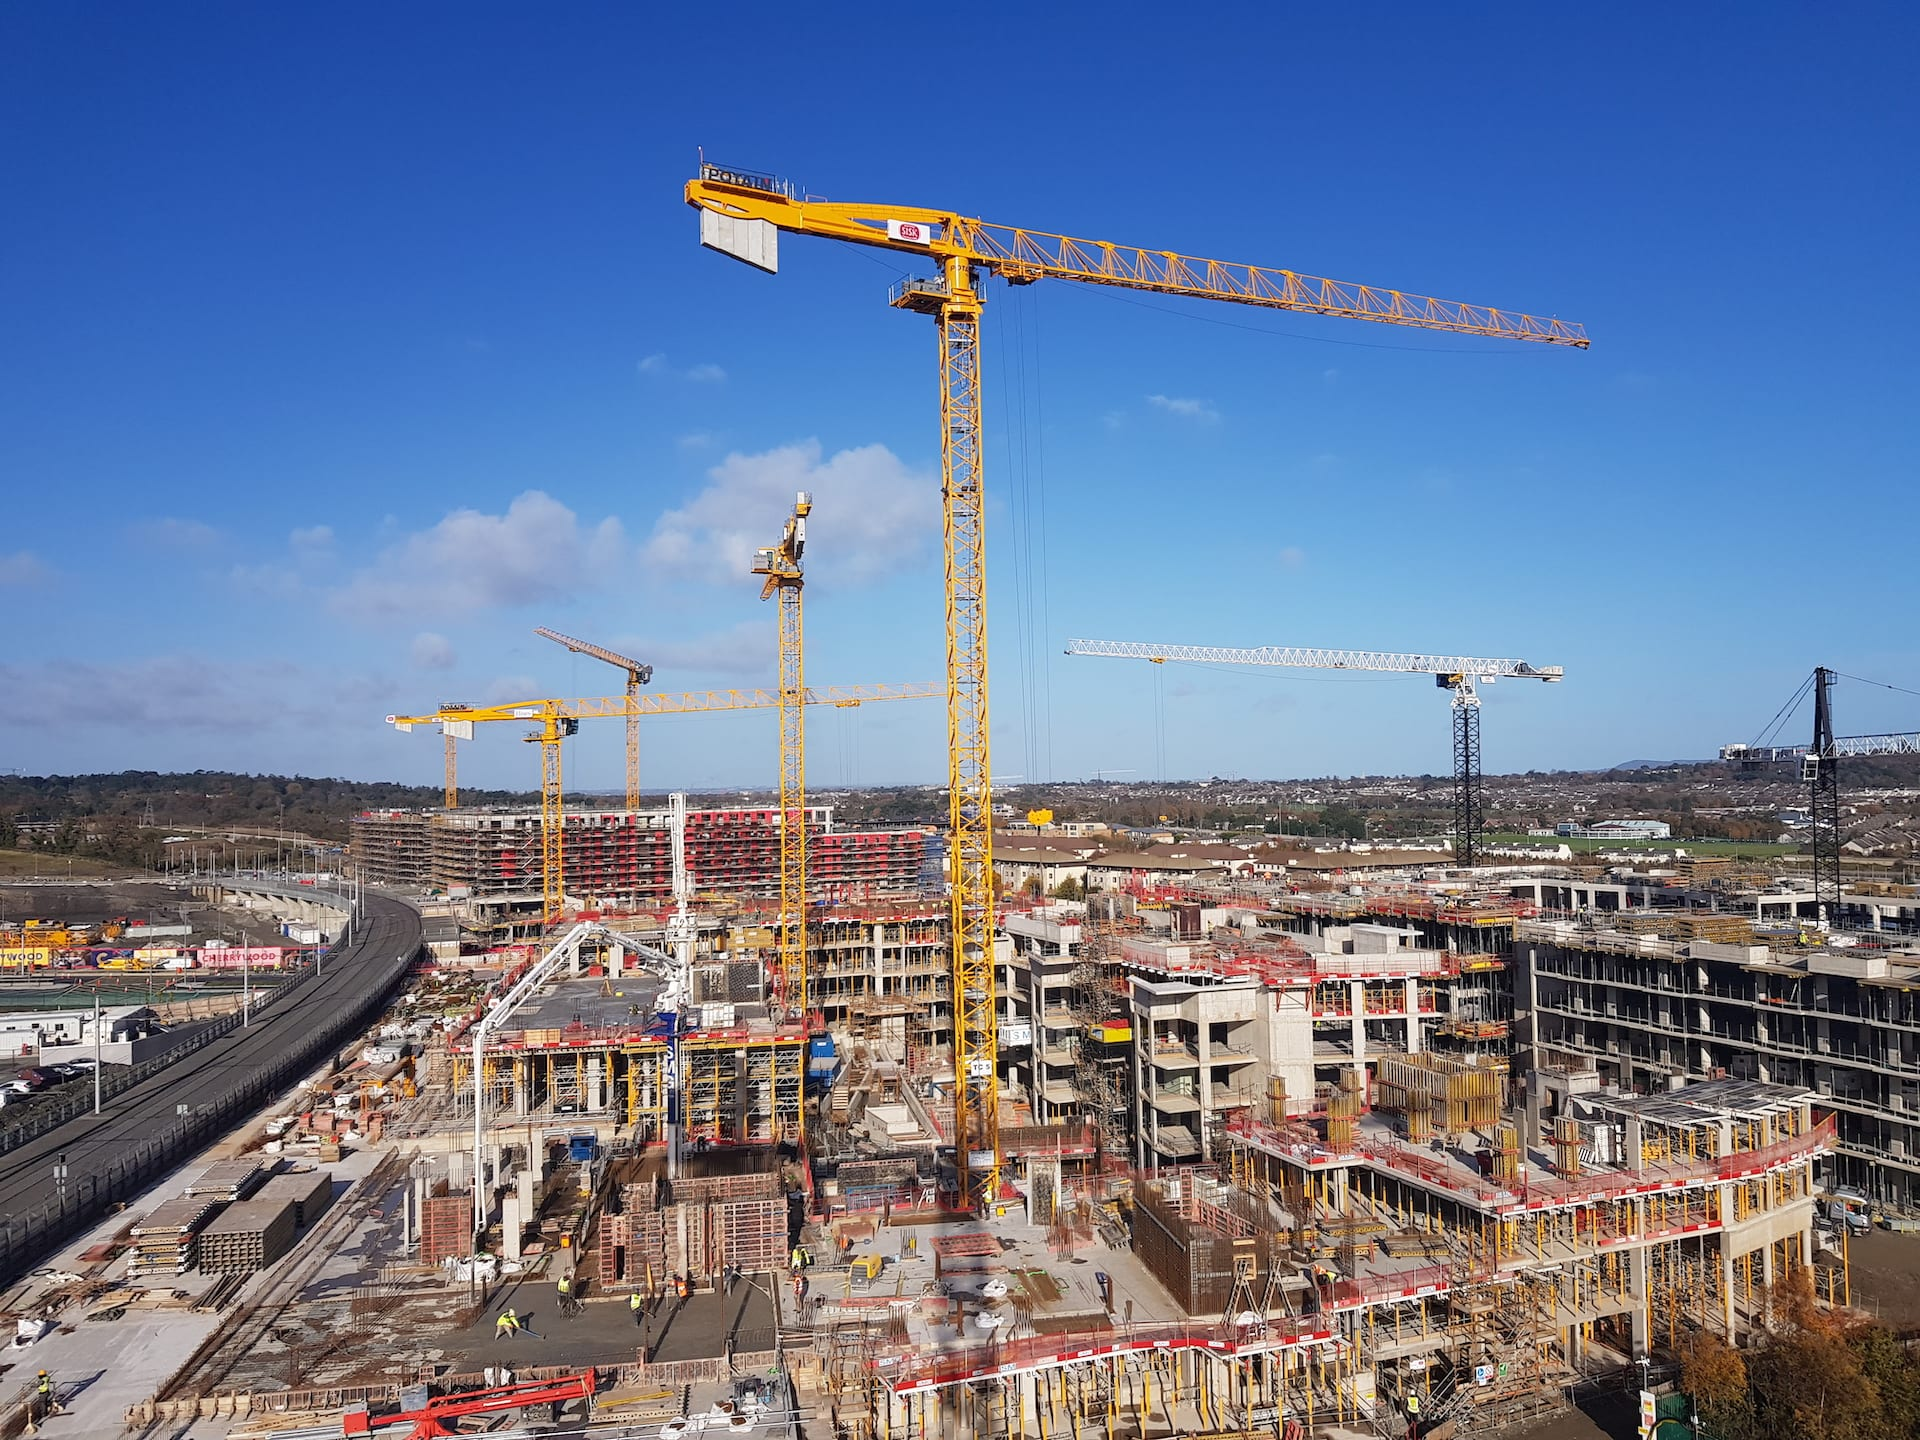 Inspectec Ireland carry out inspections of tower cranes and provide a comprehensive report